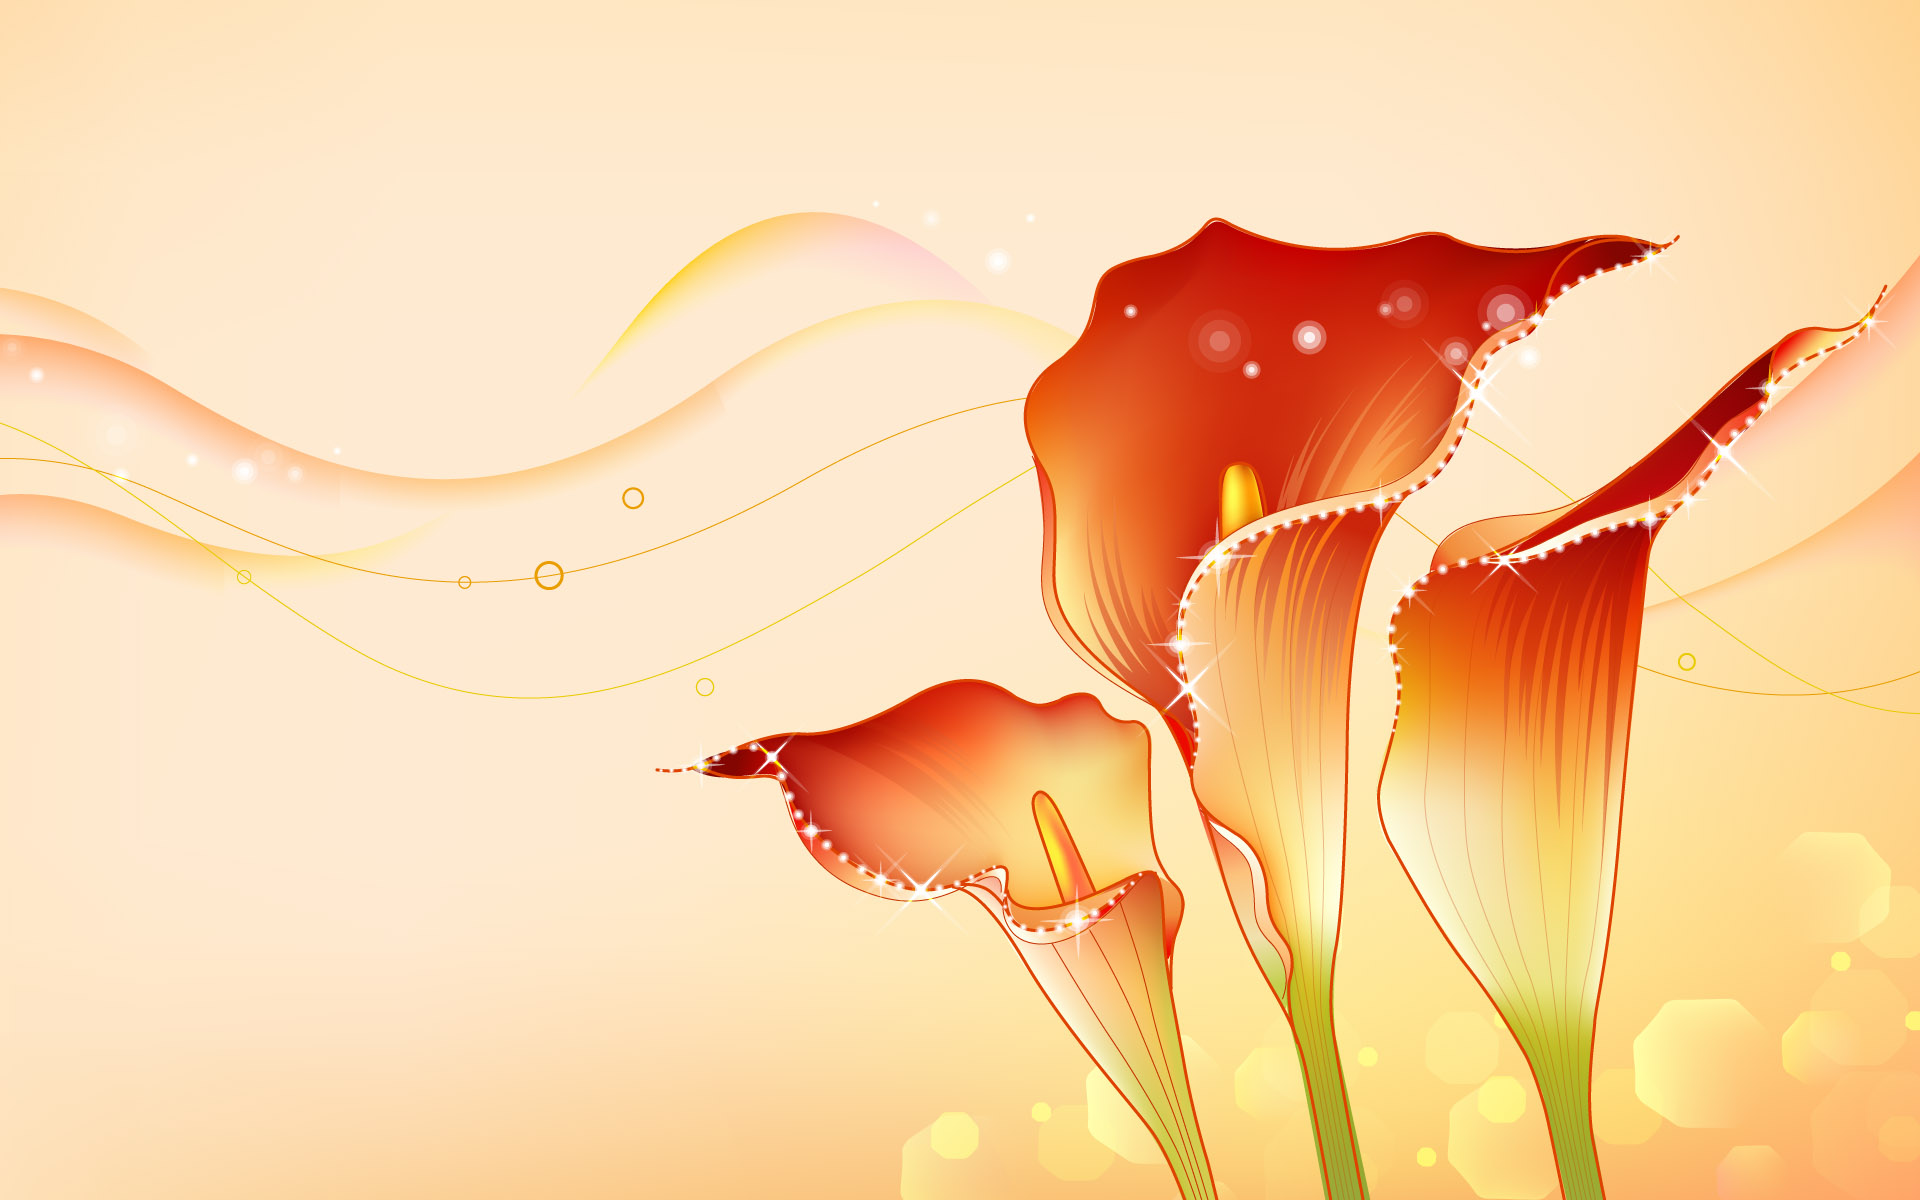 Wallpaper Design Photo : Wallpaper drawings of abstract flowers hd wallpapers